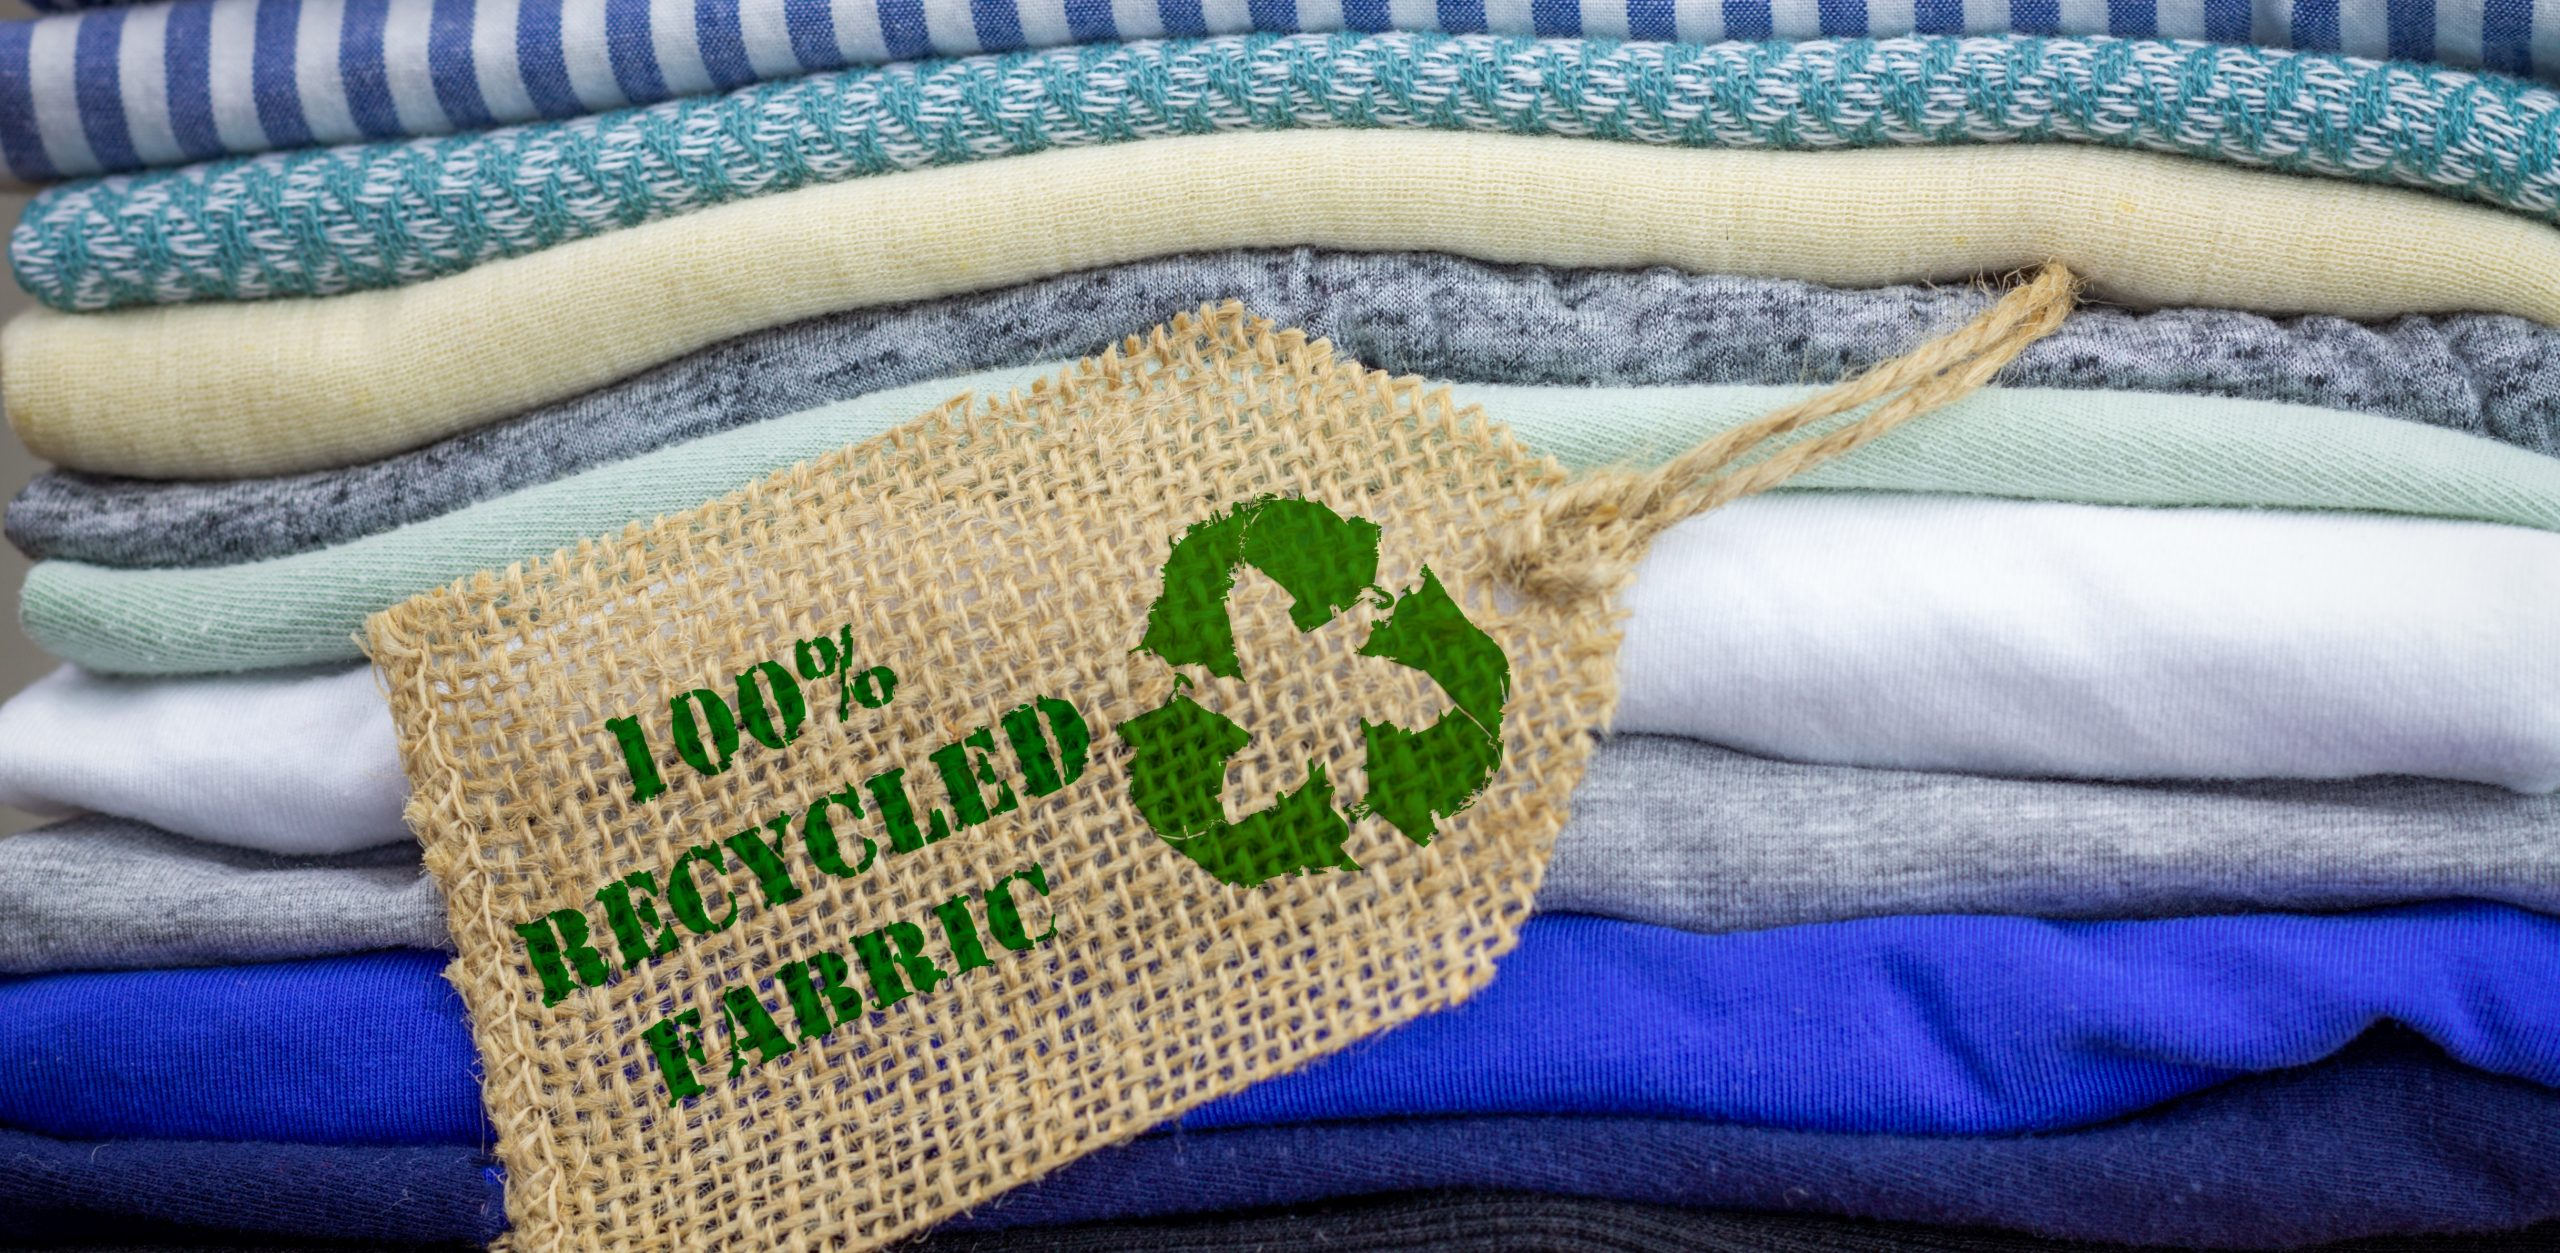 Shop Ethically with these 8 Tips